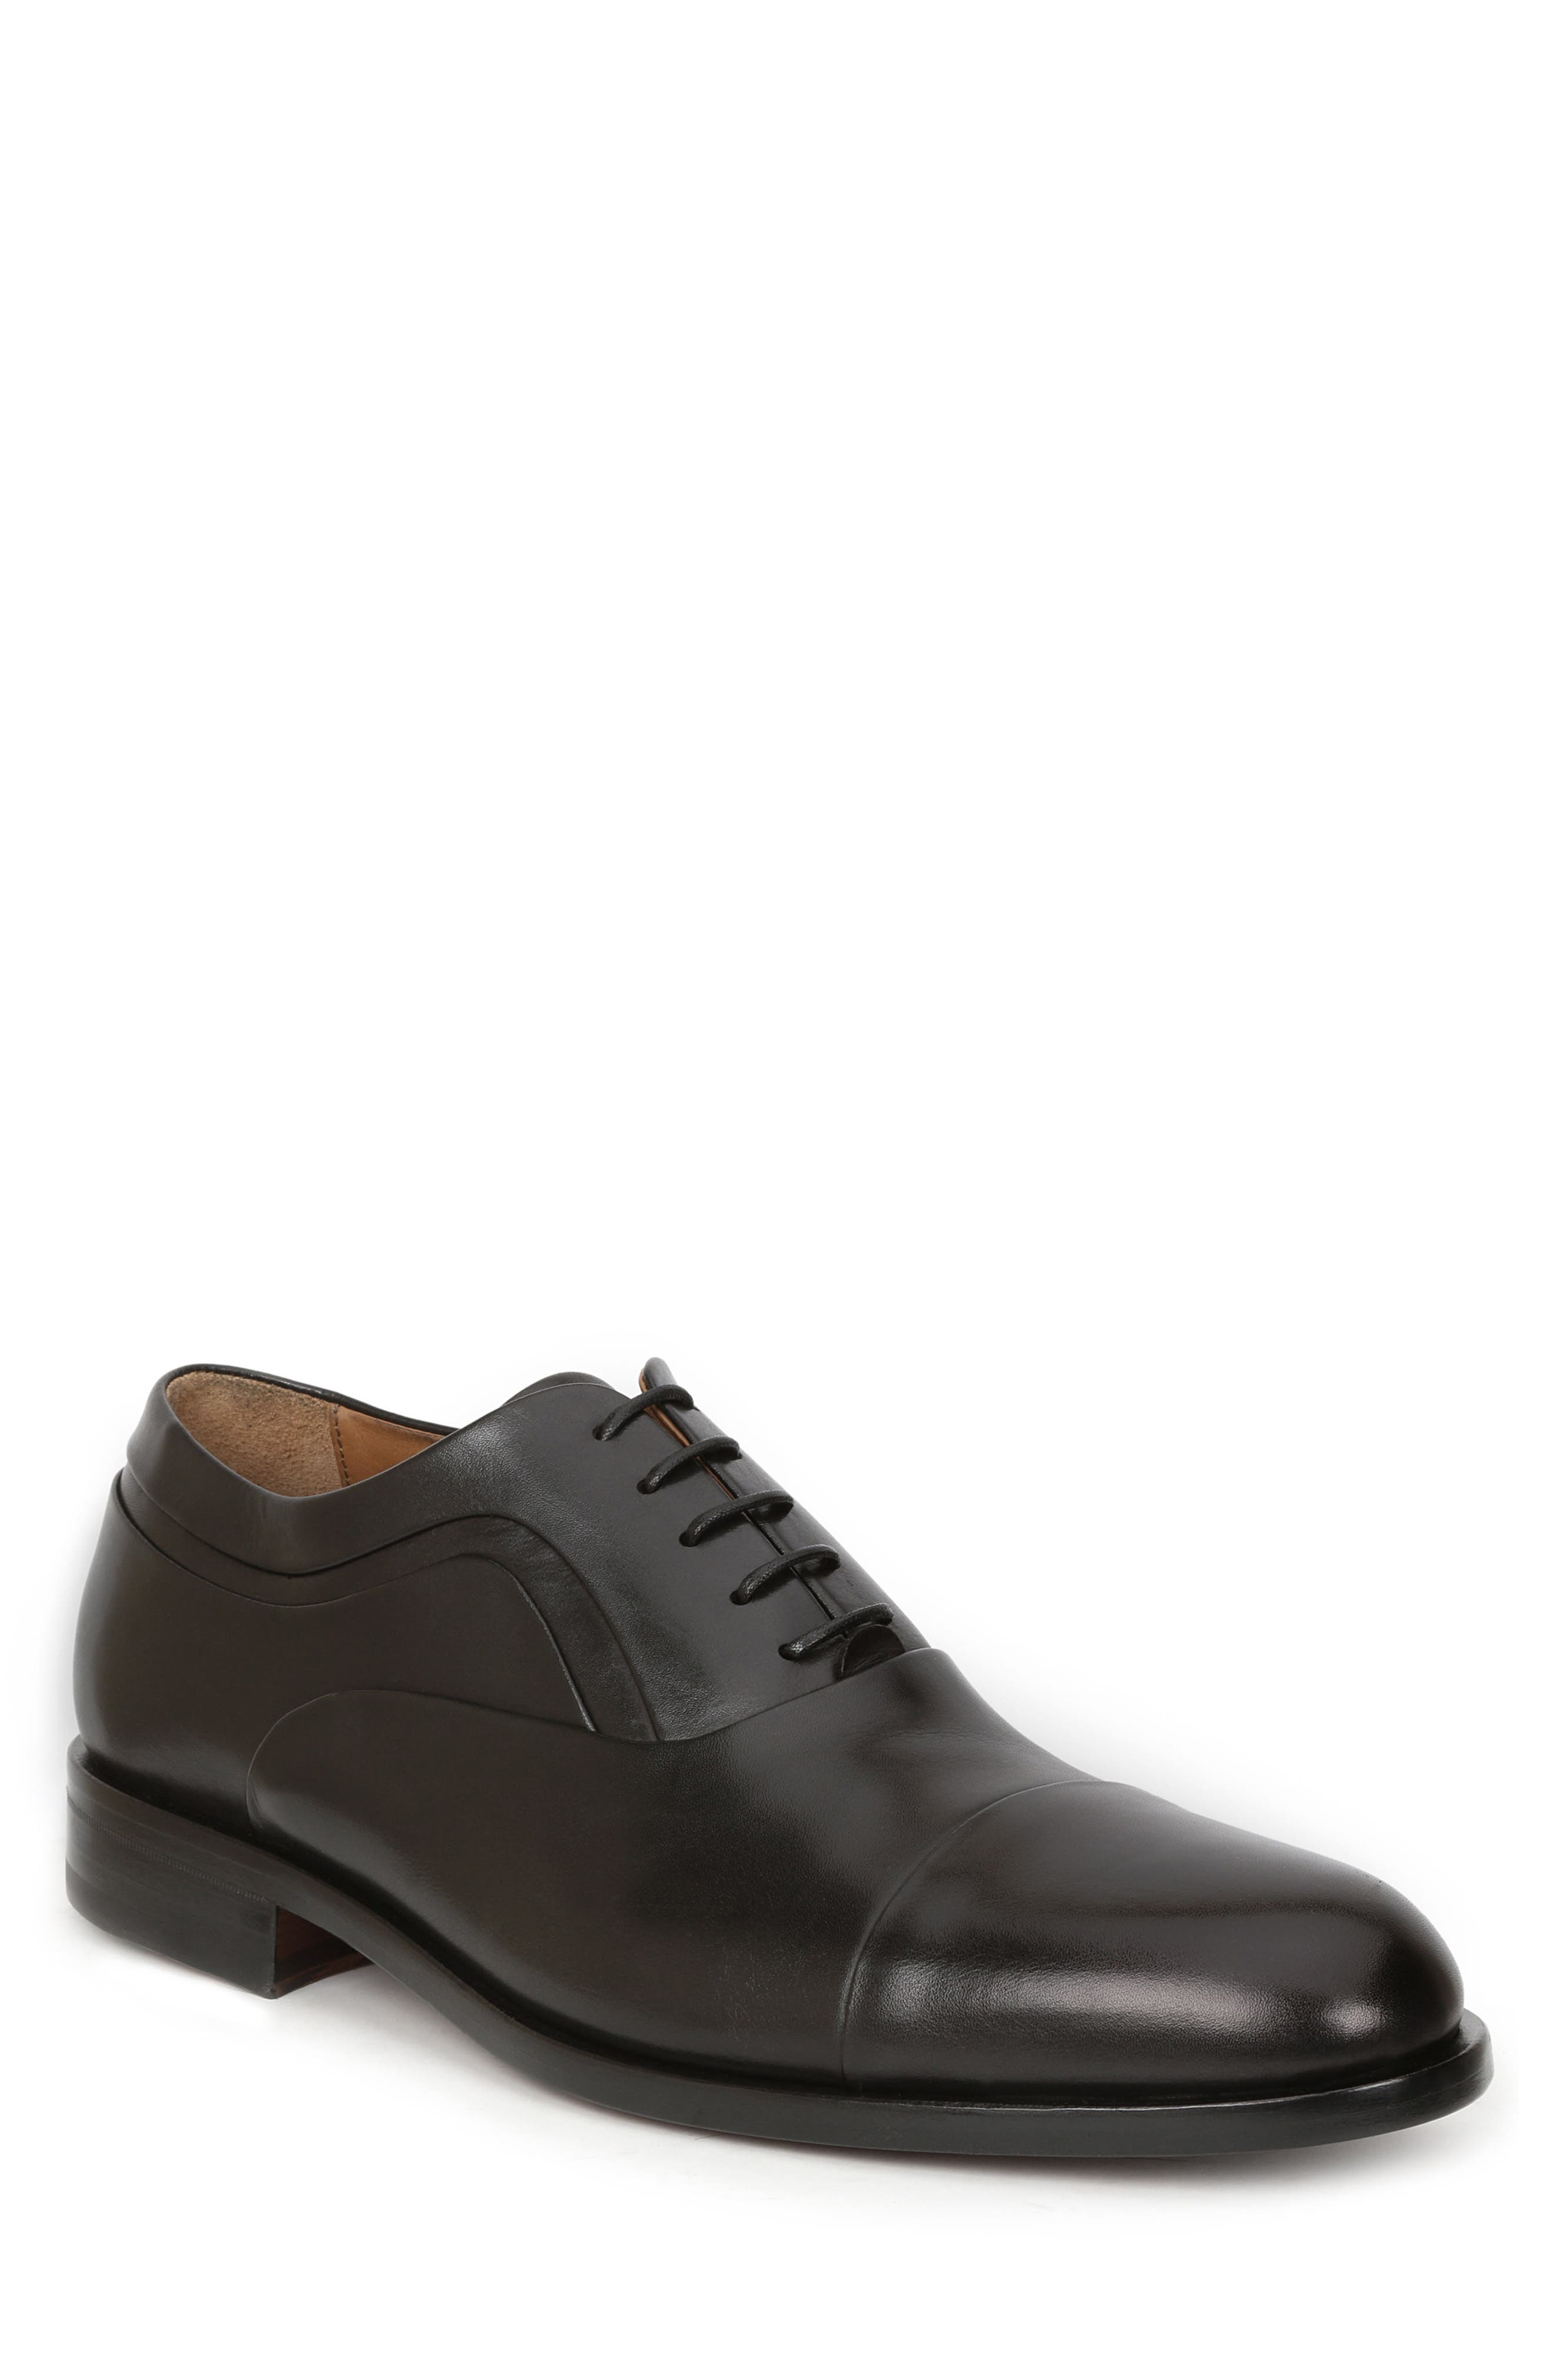 BRUNO MAGLI Sassiolo Cap Toe Oxford, Main, color, BLACK